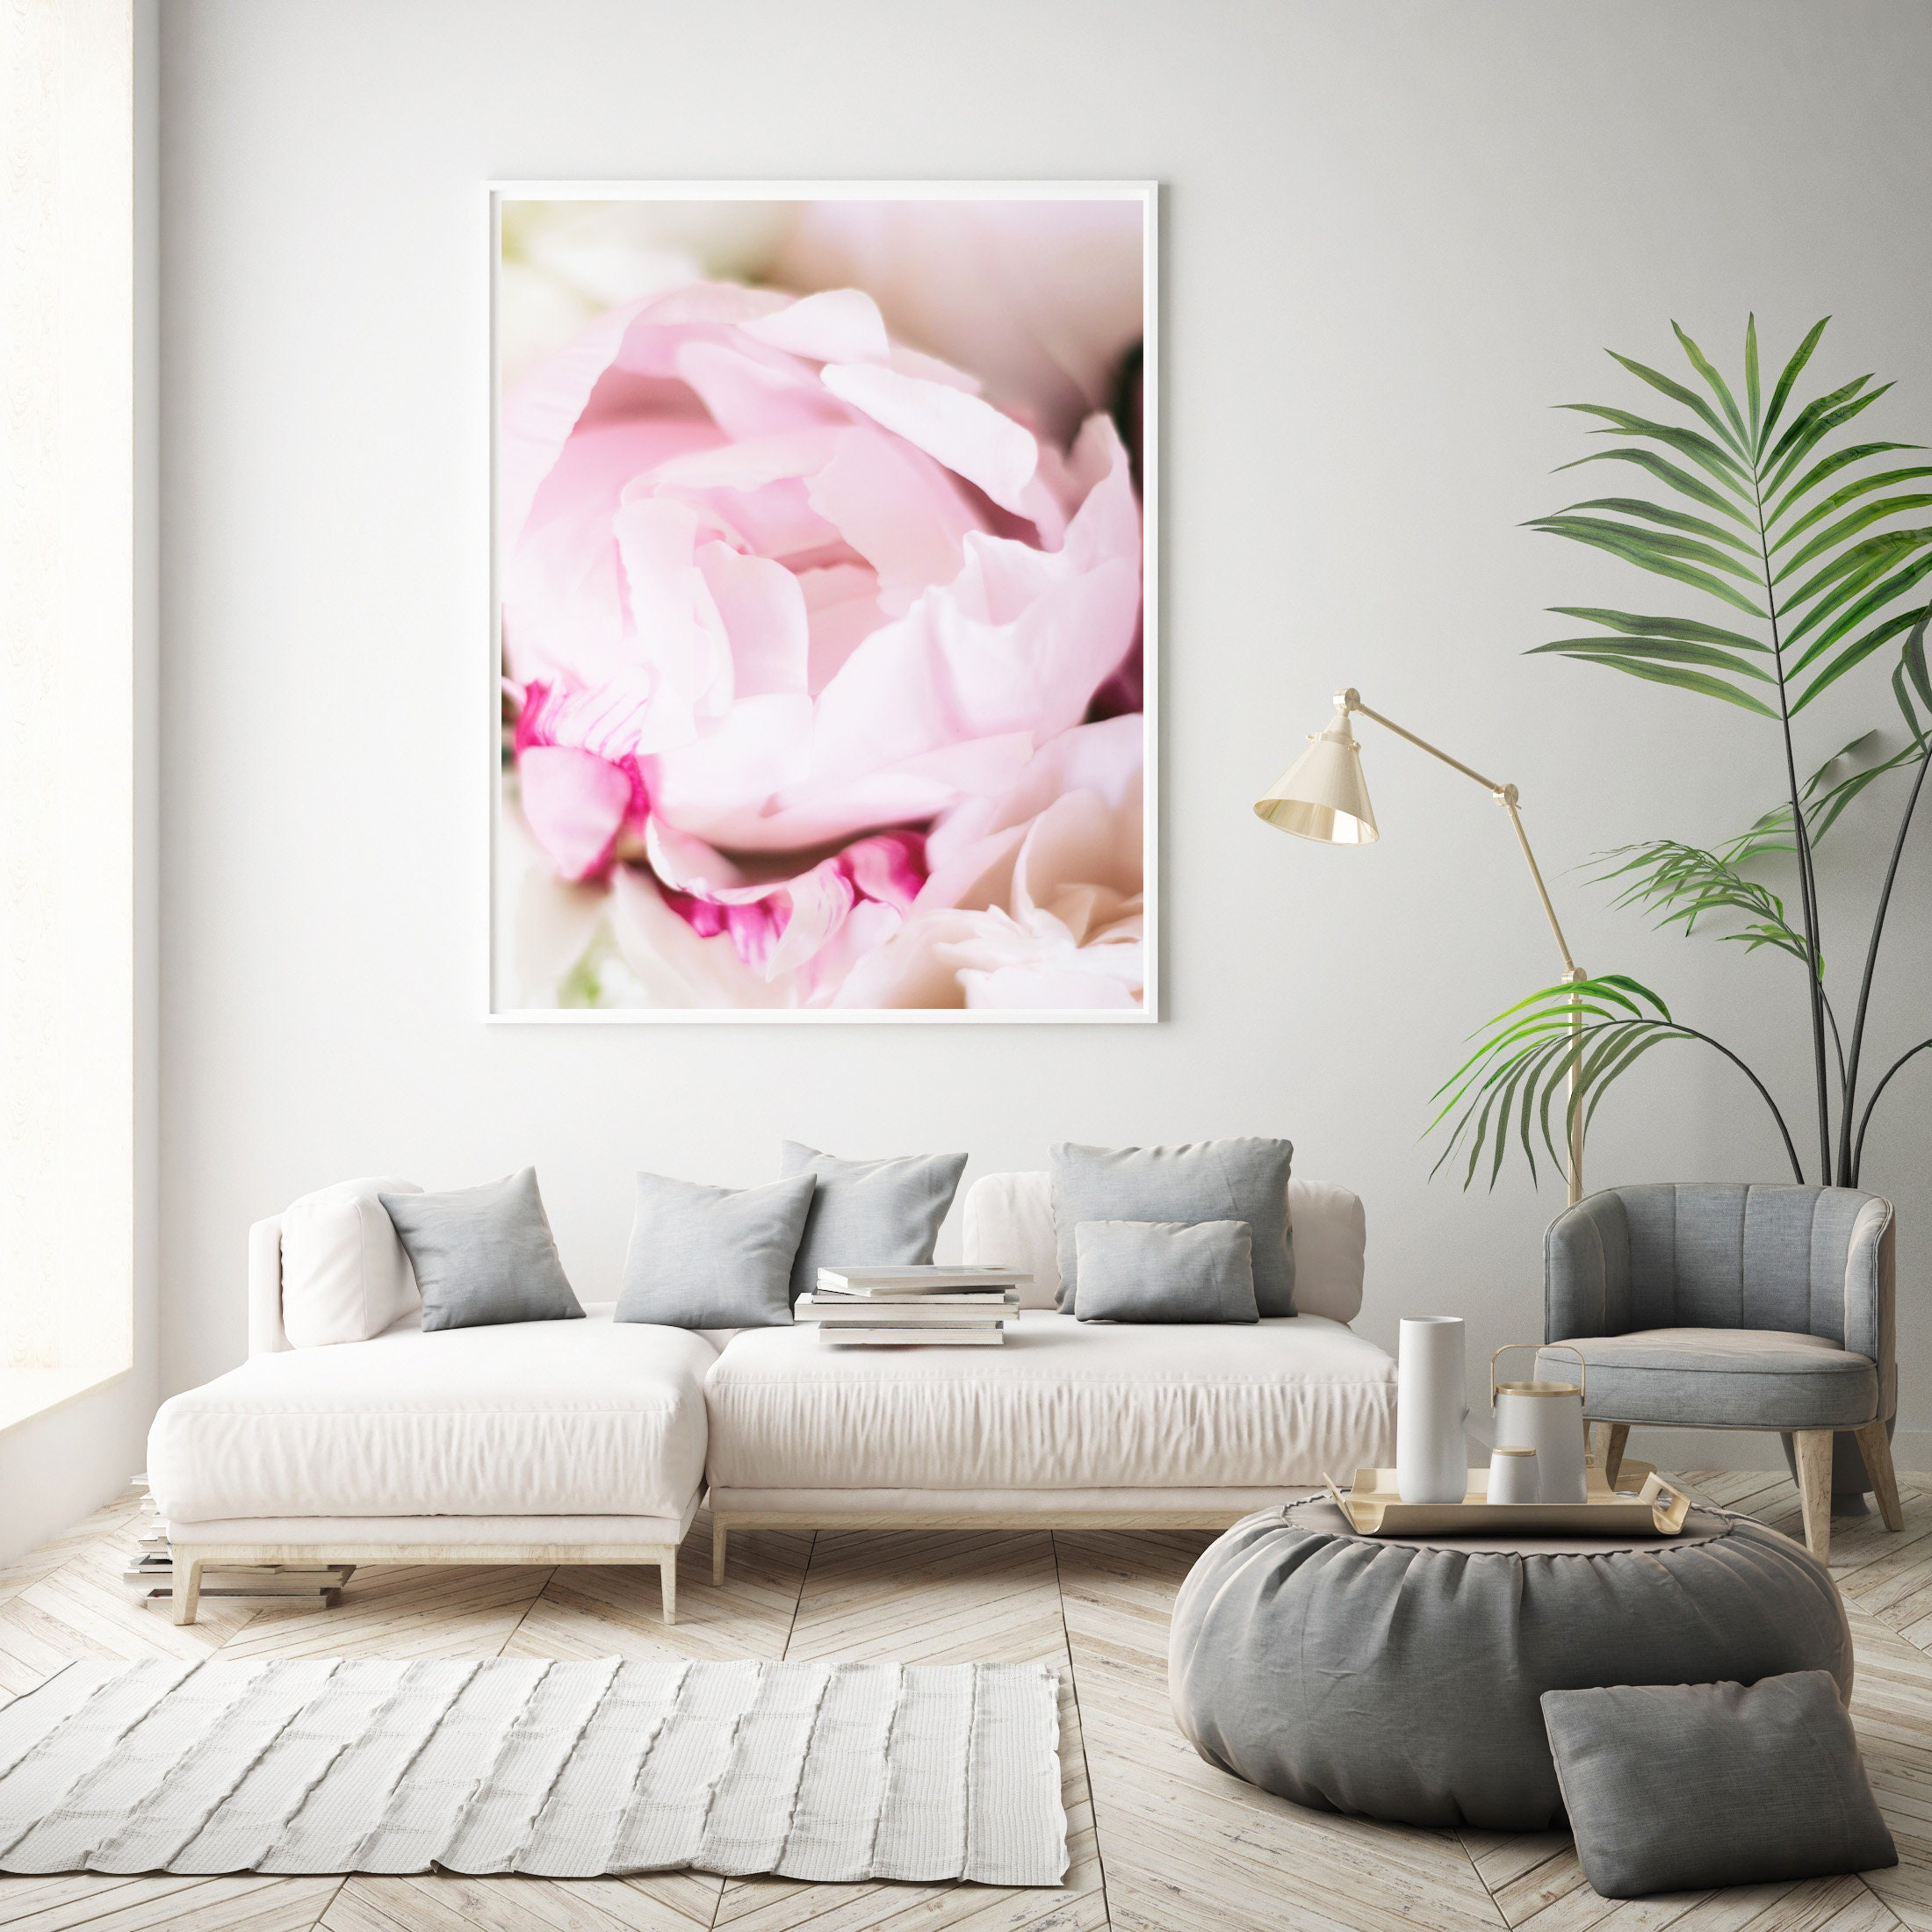 Printable Pink Peony Photo, Peony Art Print, Paris Decor Bedroom, Peony Wall  Art, Paris Wall Decor, Cafe Art Decor, Gallery Wall Photo, Rose